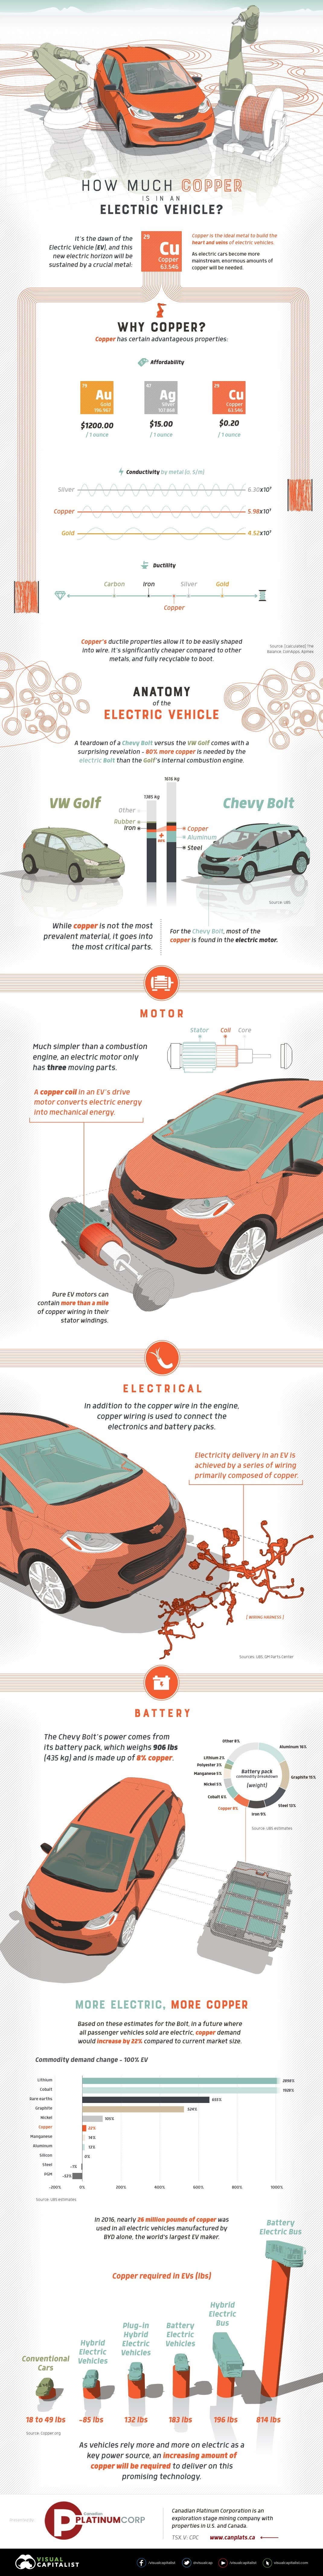 How Much Copper is in an Electric Vehicle? #infographic